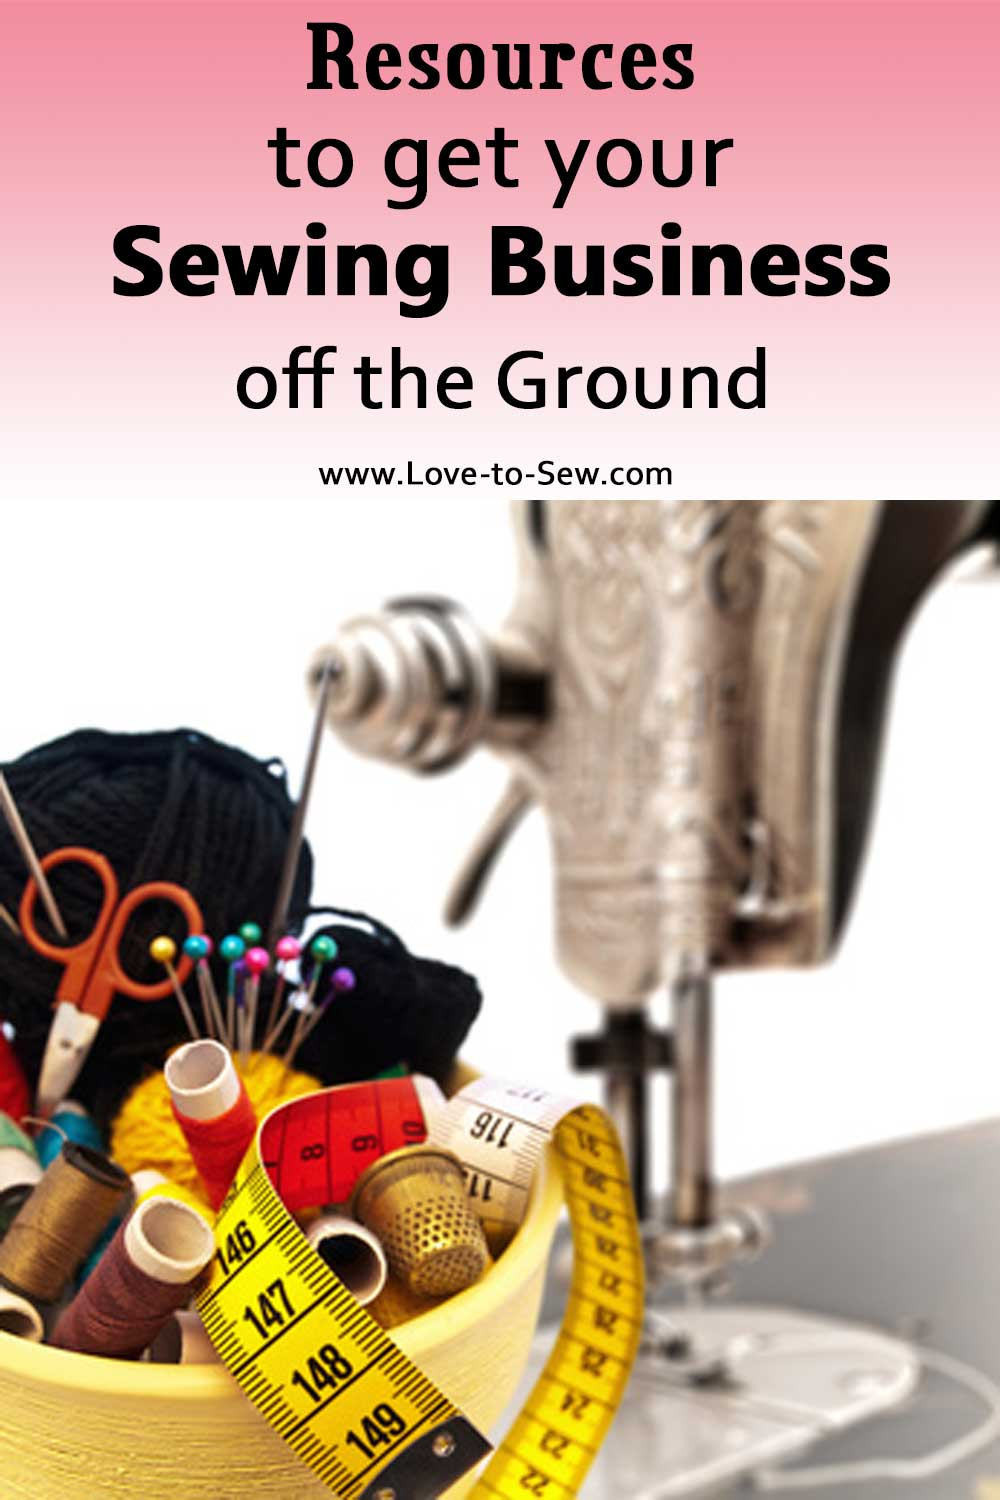 Resources to Get your Sewing Business off the Ground